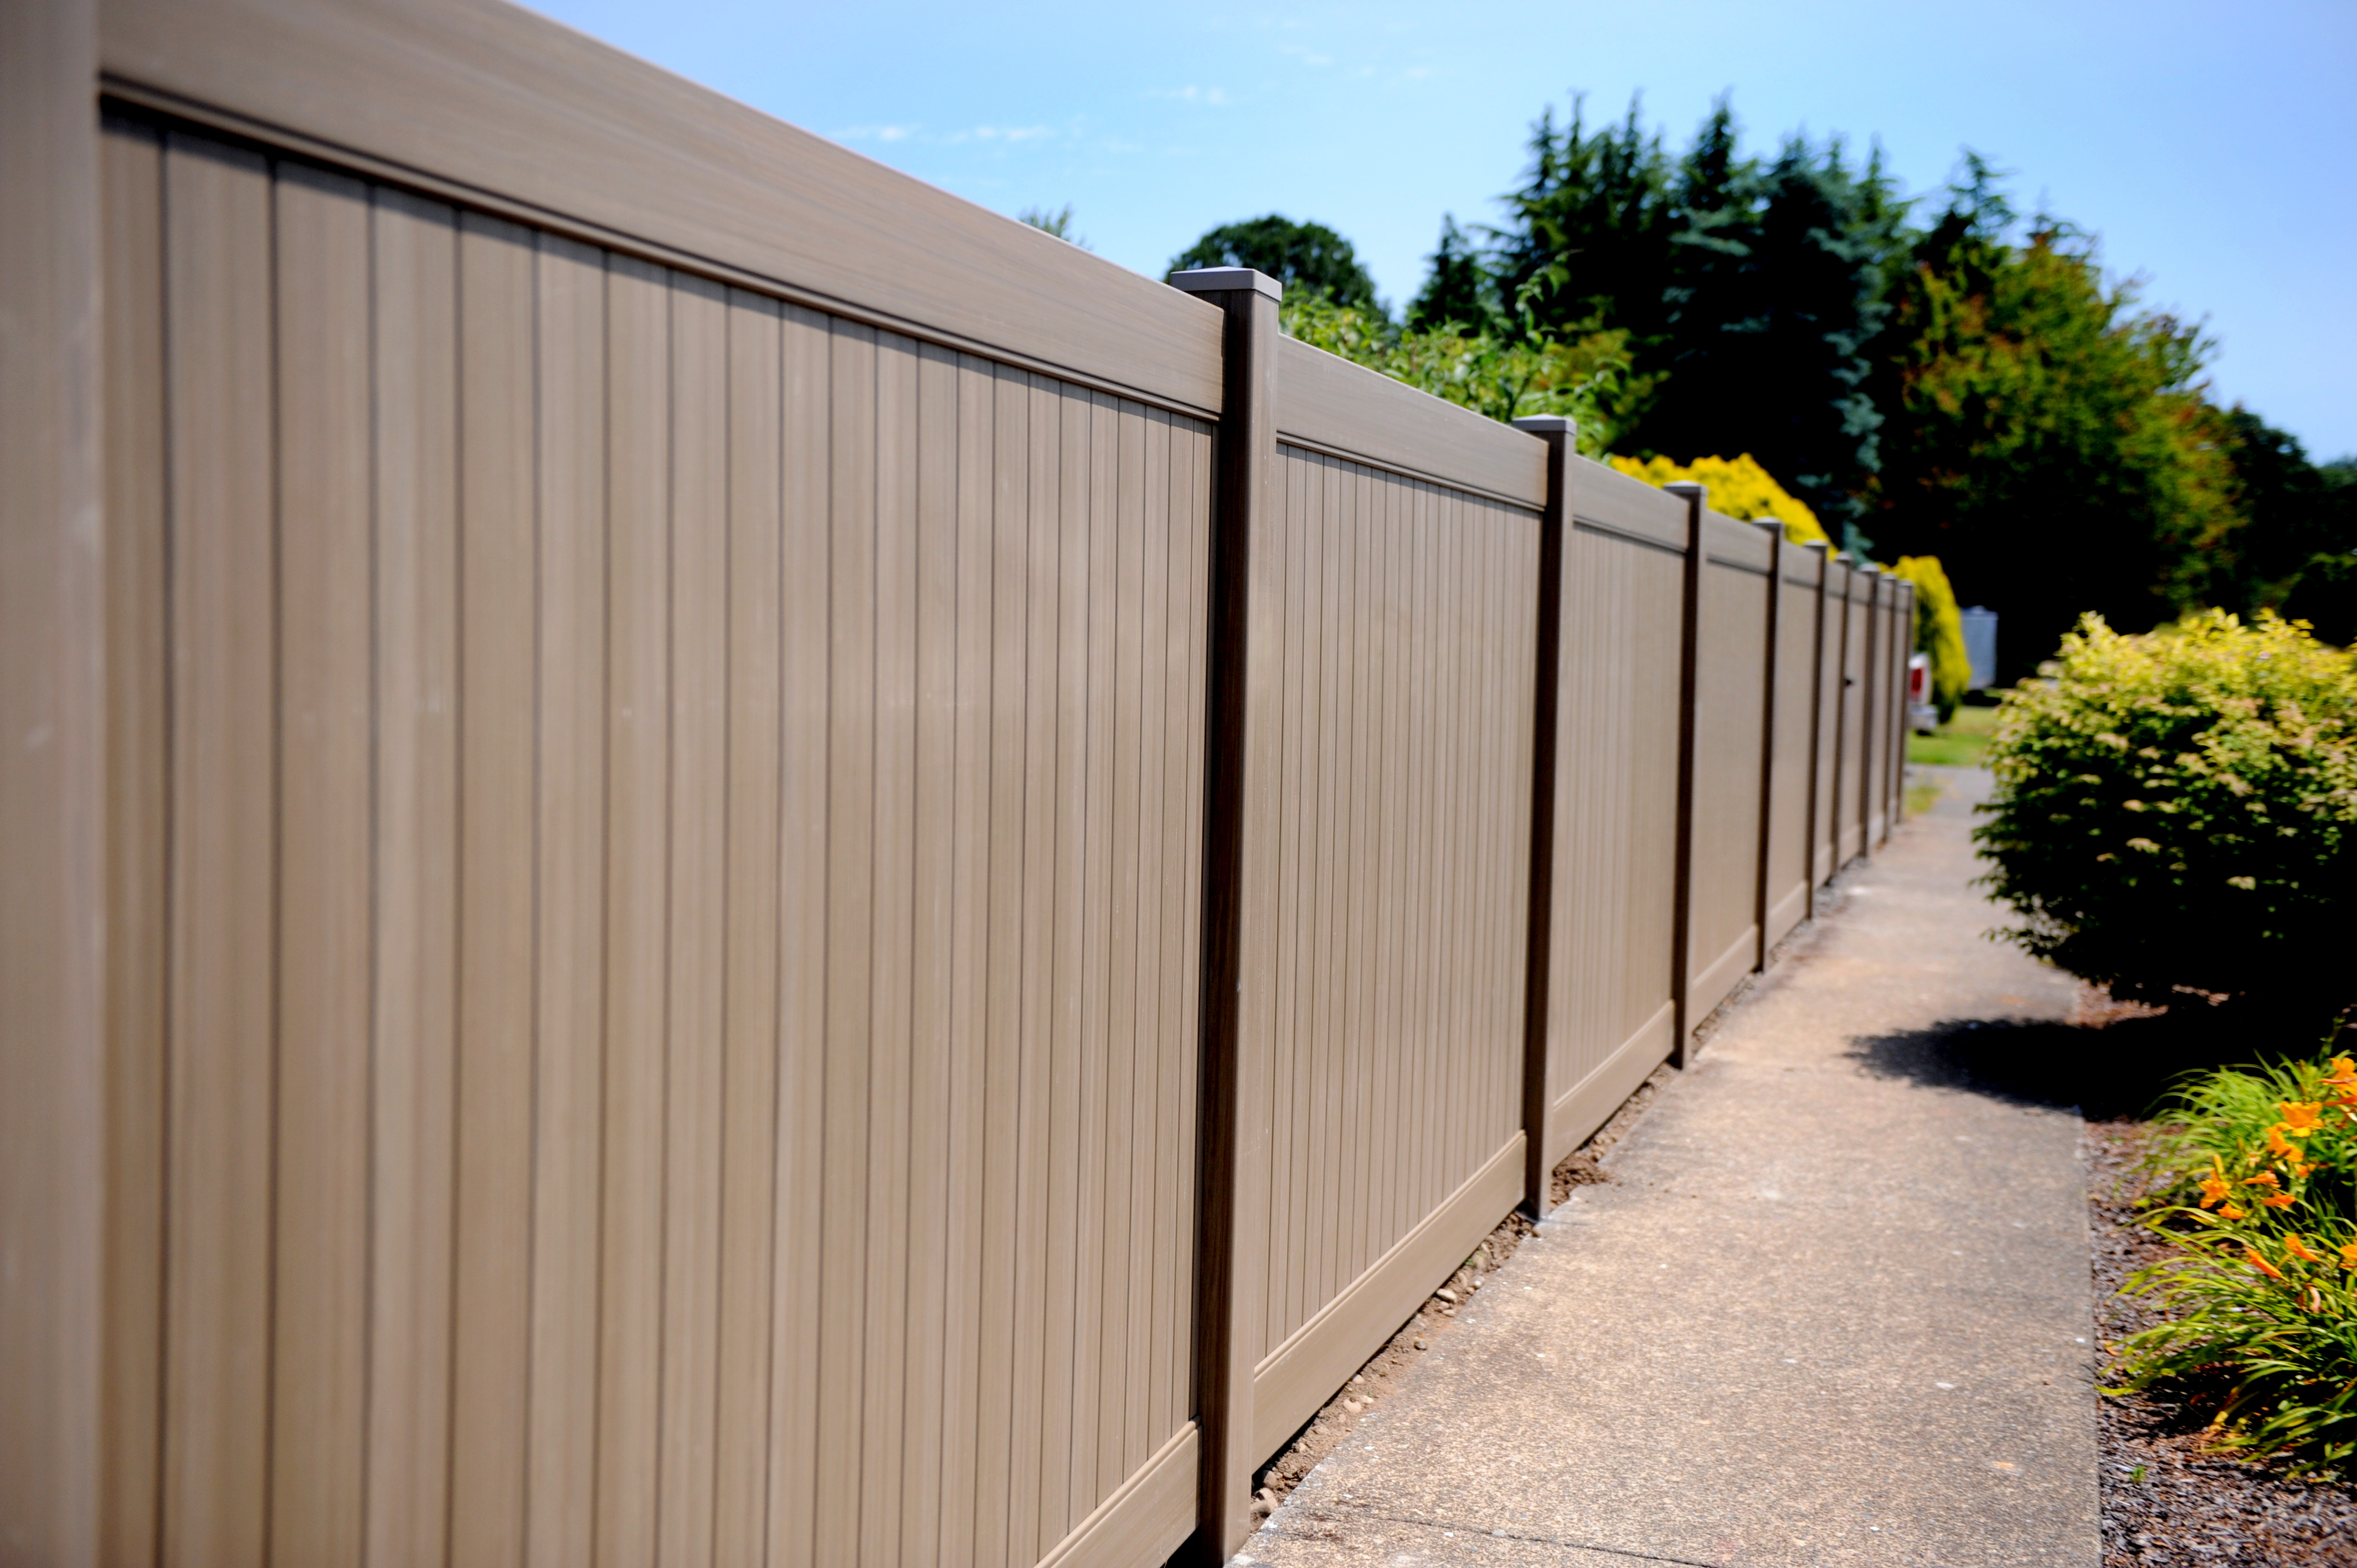 Unique Vinyl Fencing Colors With Kroy Vinyl Fencing And Railing Is regarding size 4256 X 2832